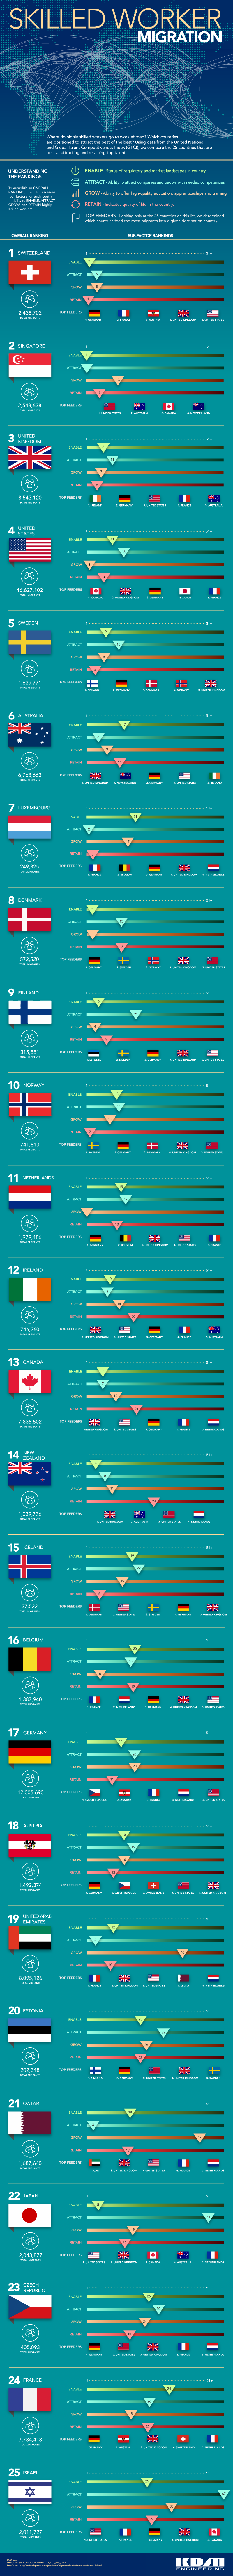 Which Countries Are Set to Attract the Highest Skilled Workers from Abroad #Infographic